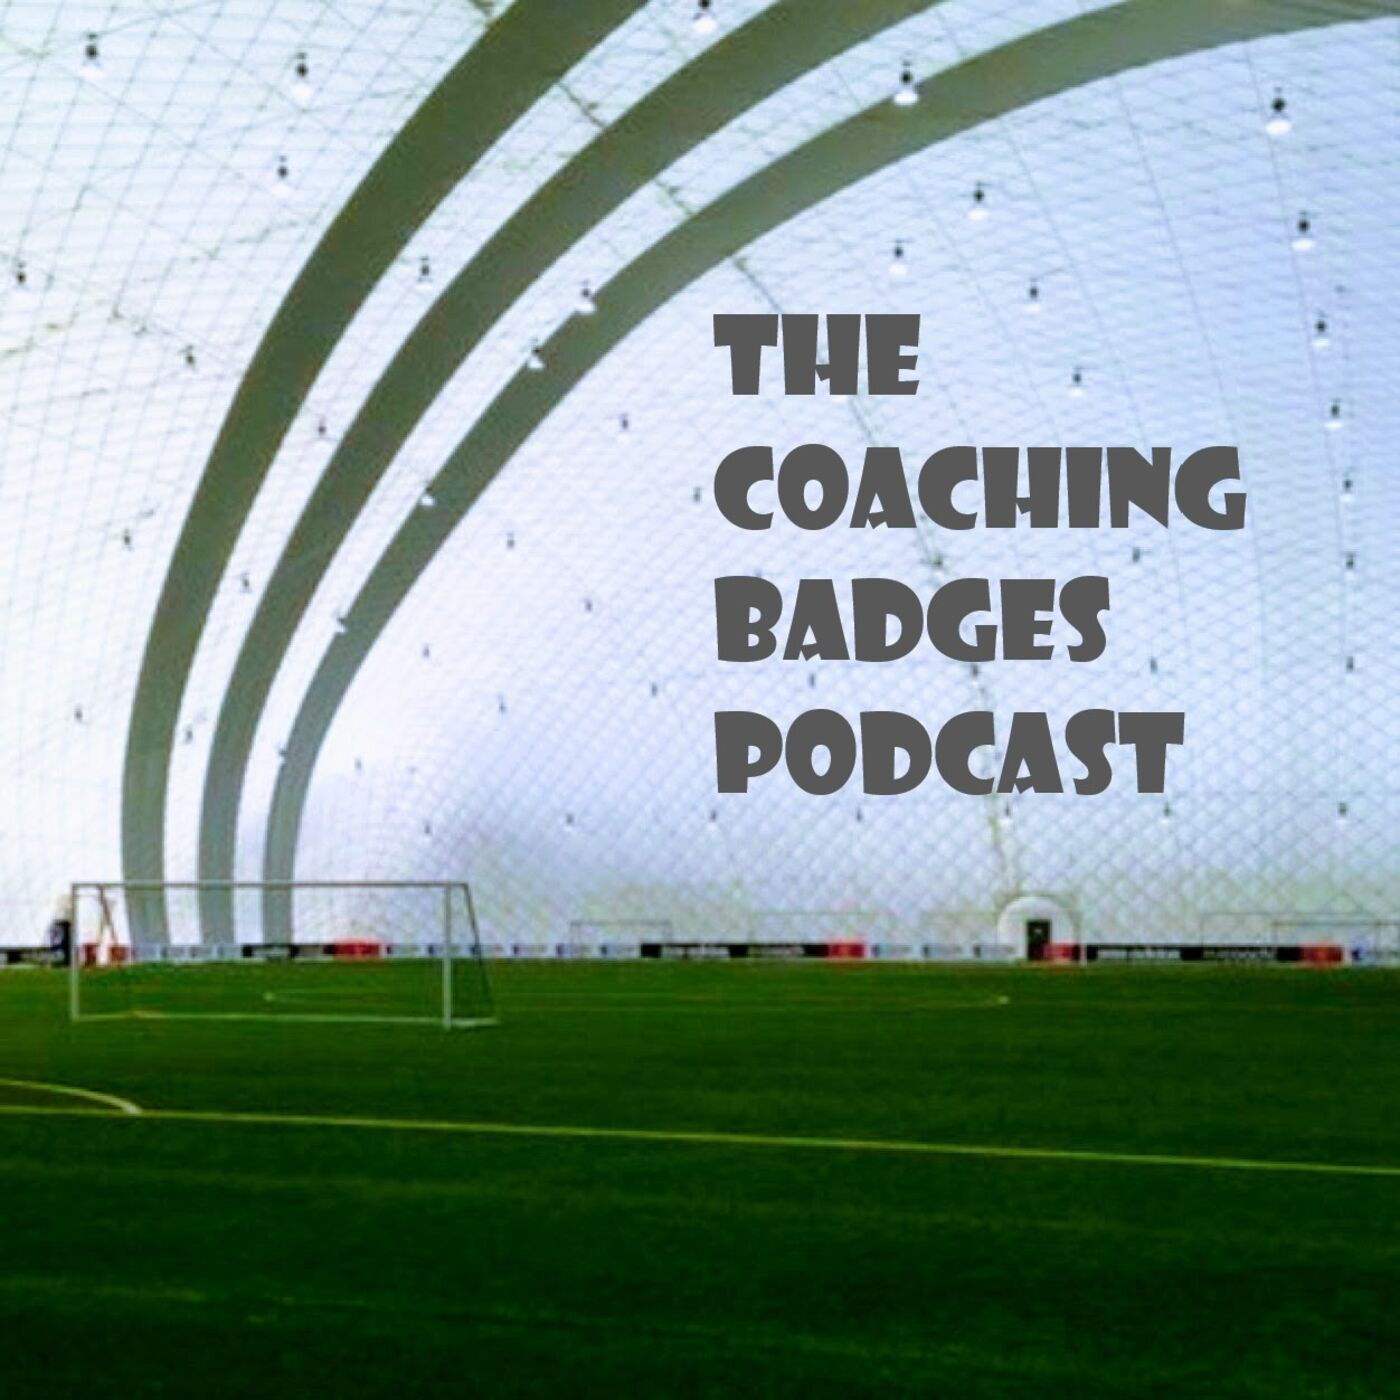 The Coaching Badges Podcast